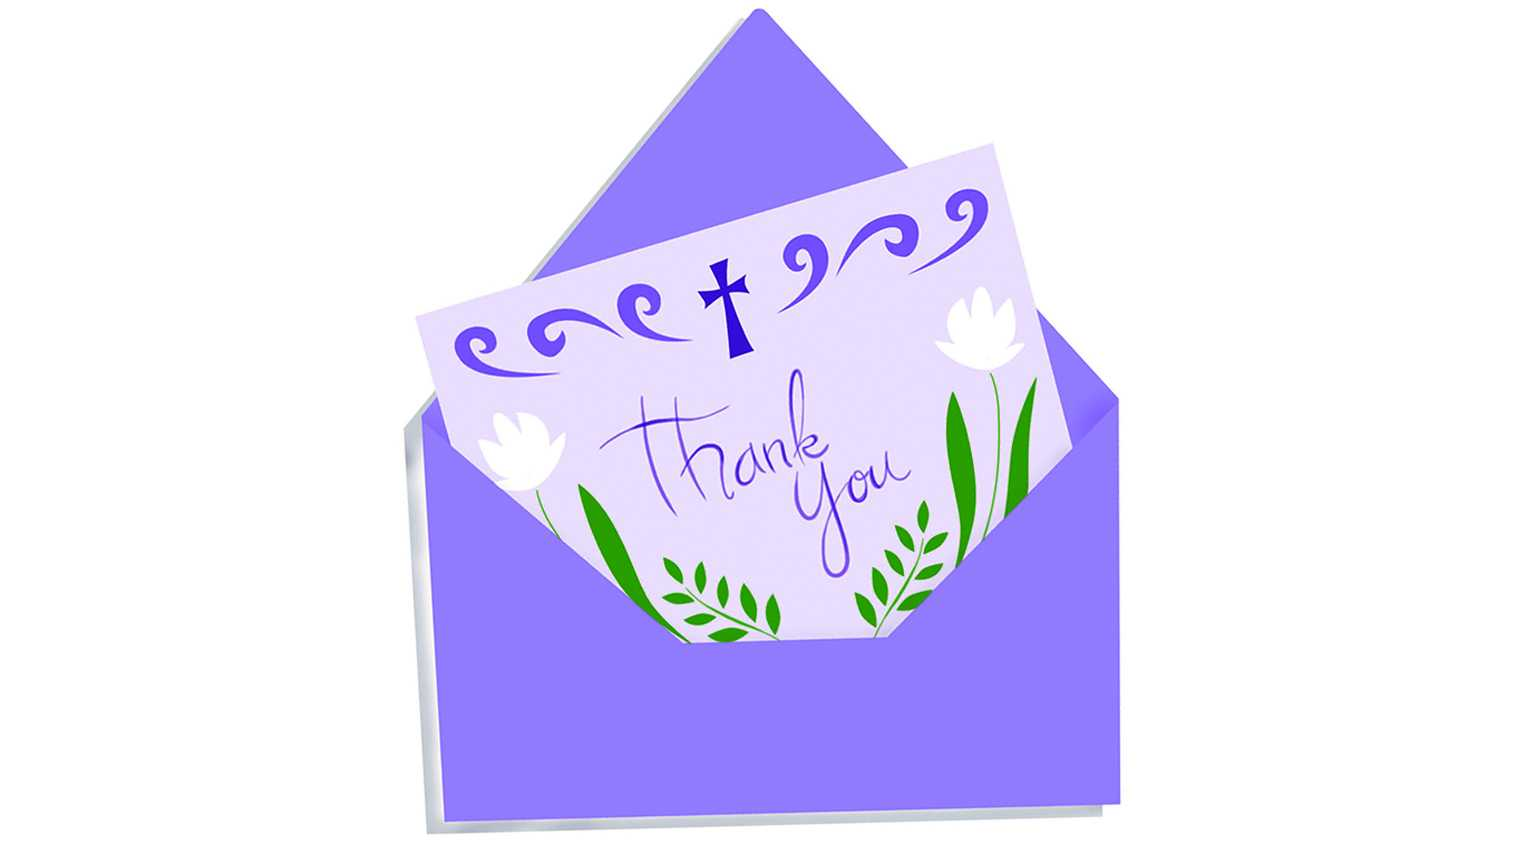 An illustration of a 'Thank You' card in an envelope adorned with white lilies and a cross.